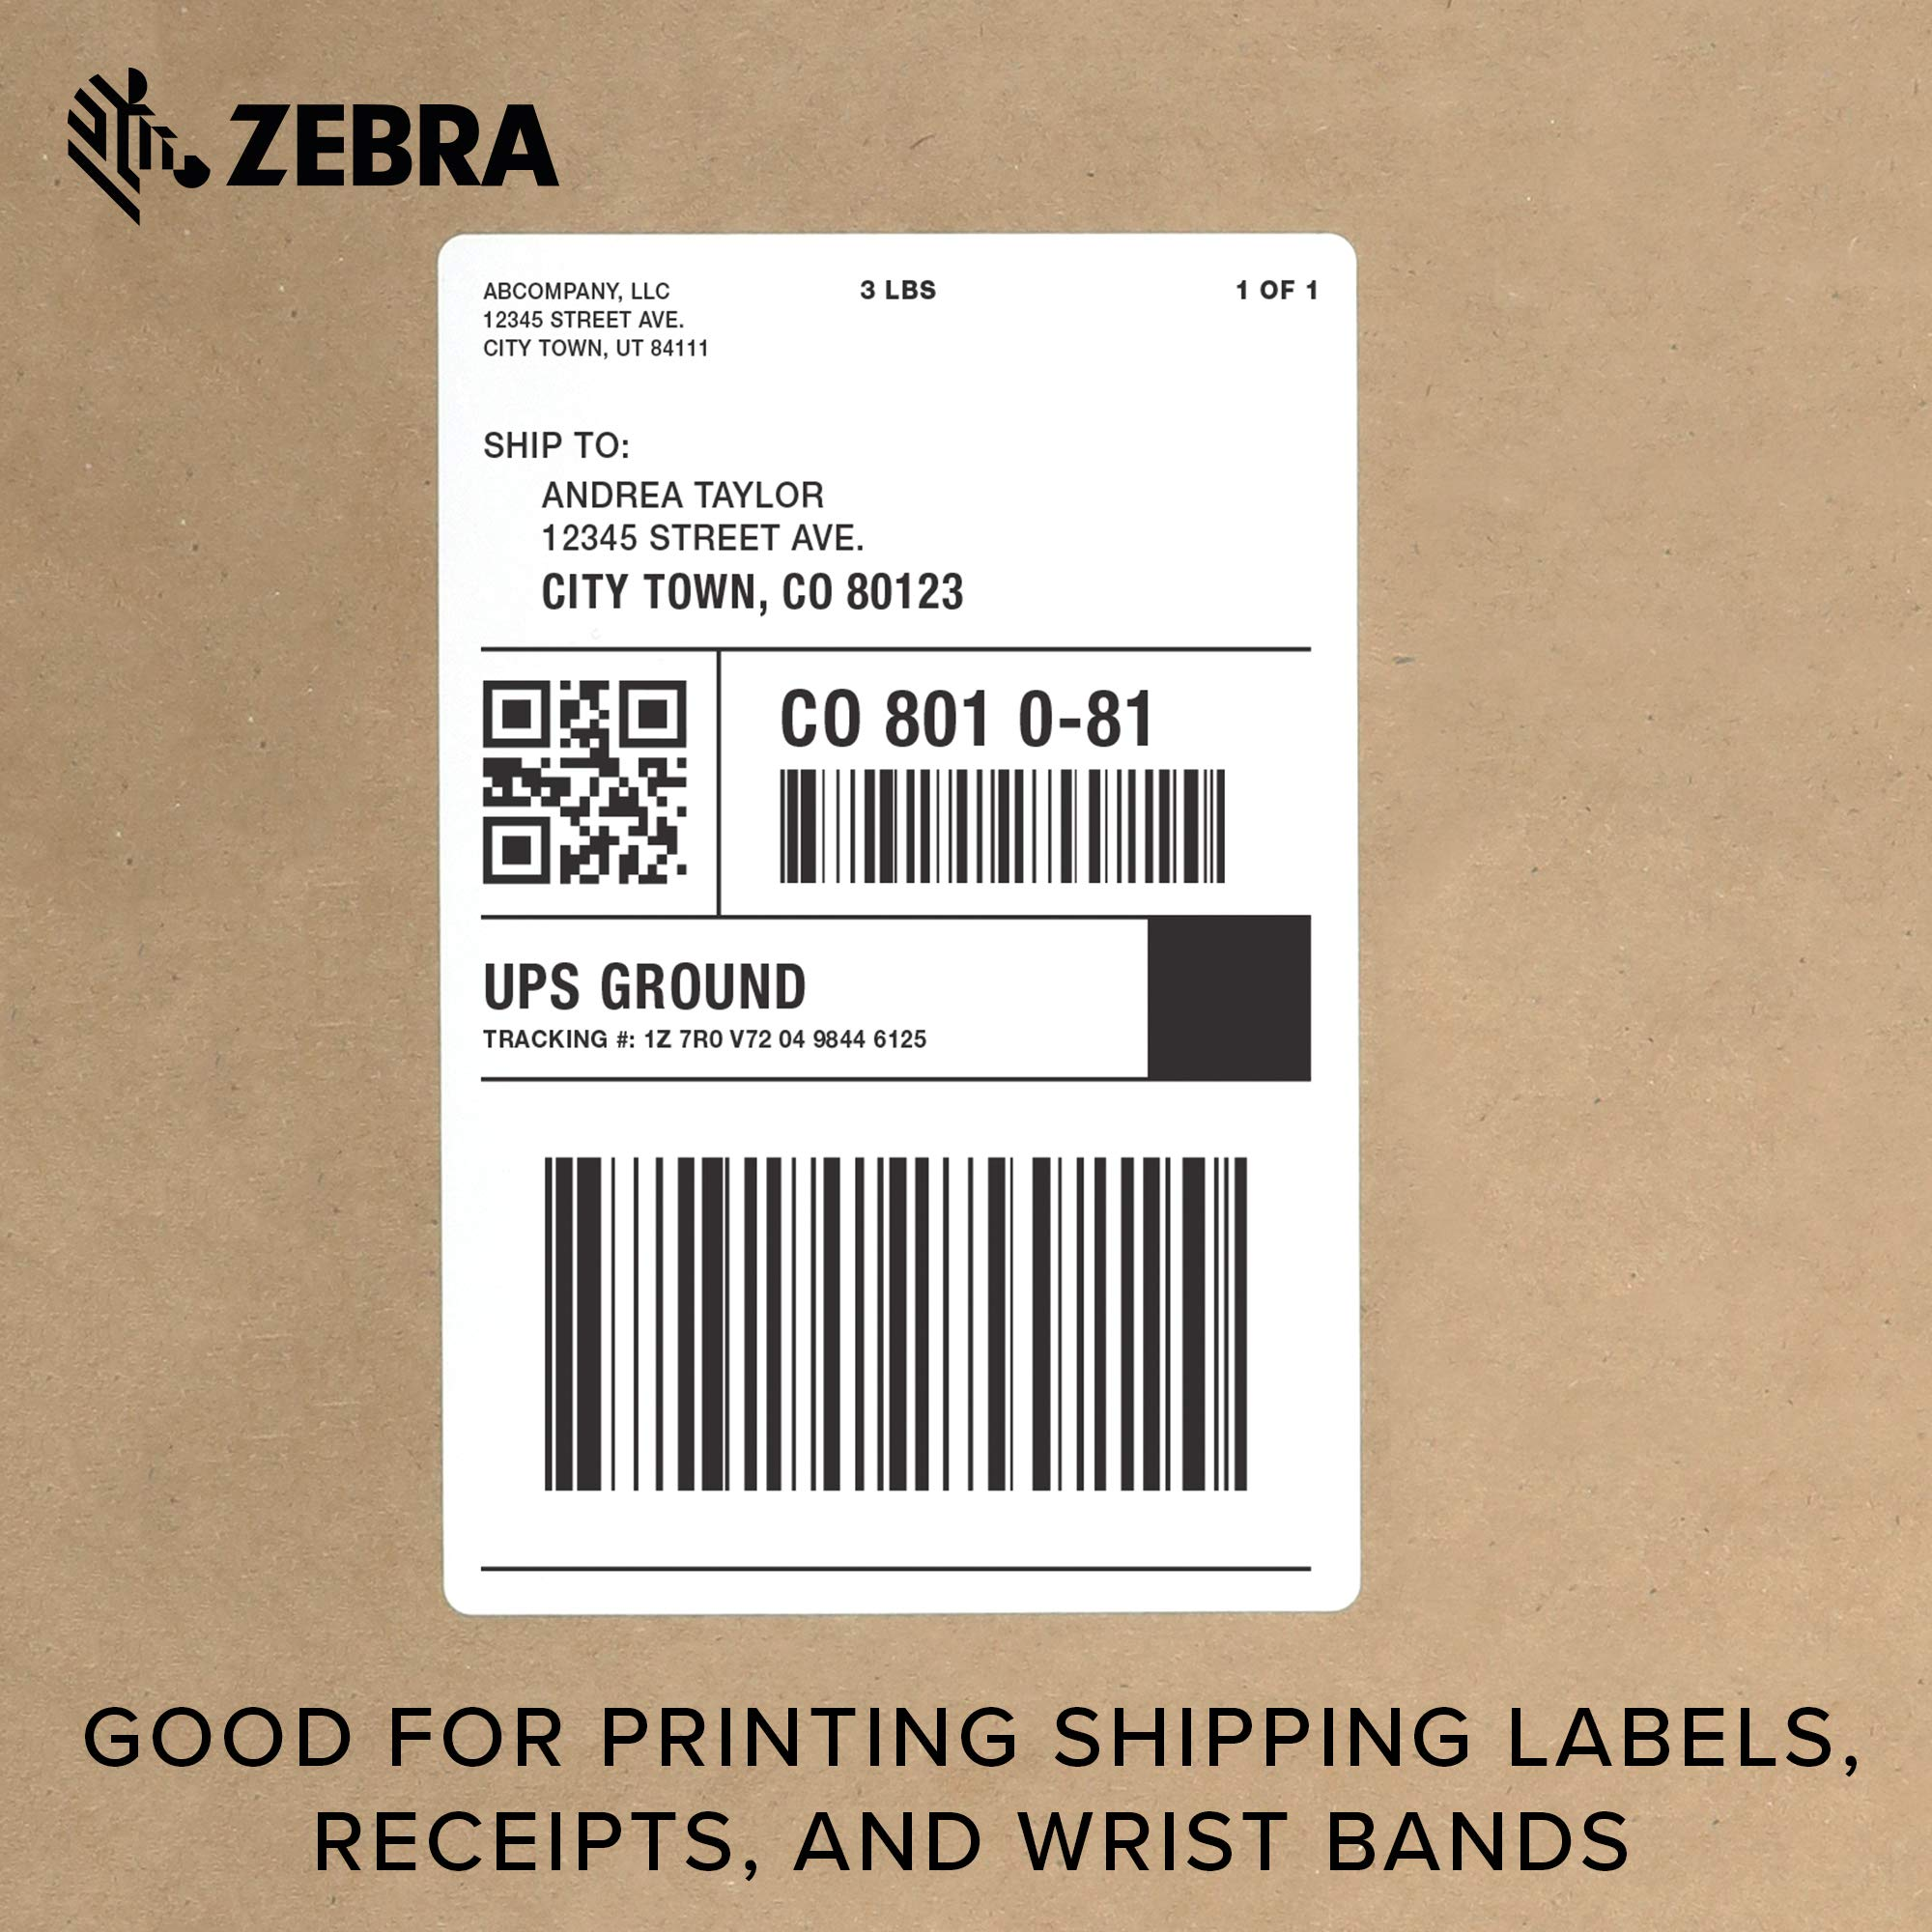 Zebra - ZD420d Direct Thermal Desktop Printer for Labels and Barcodes - Print Width 4 in - 300 dpi - Interface: USB - ZD42043-D01000EZ by Zebra Technologies (Image #7)